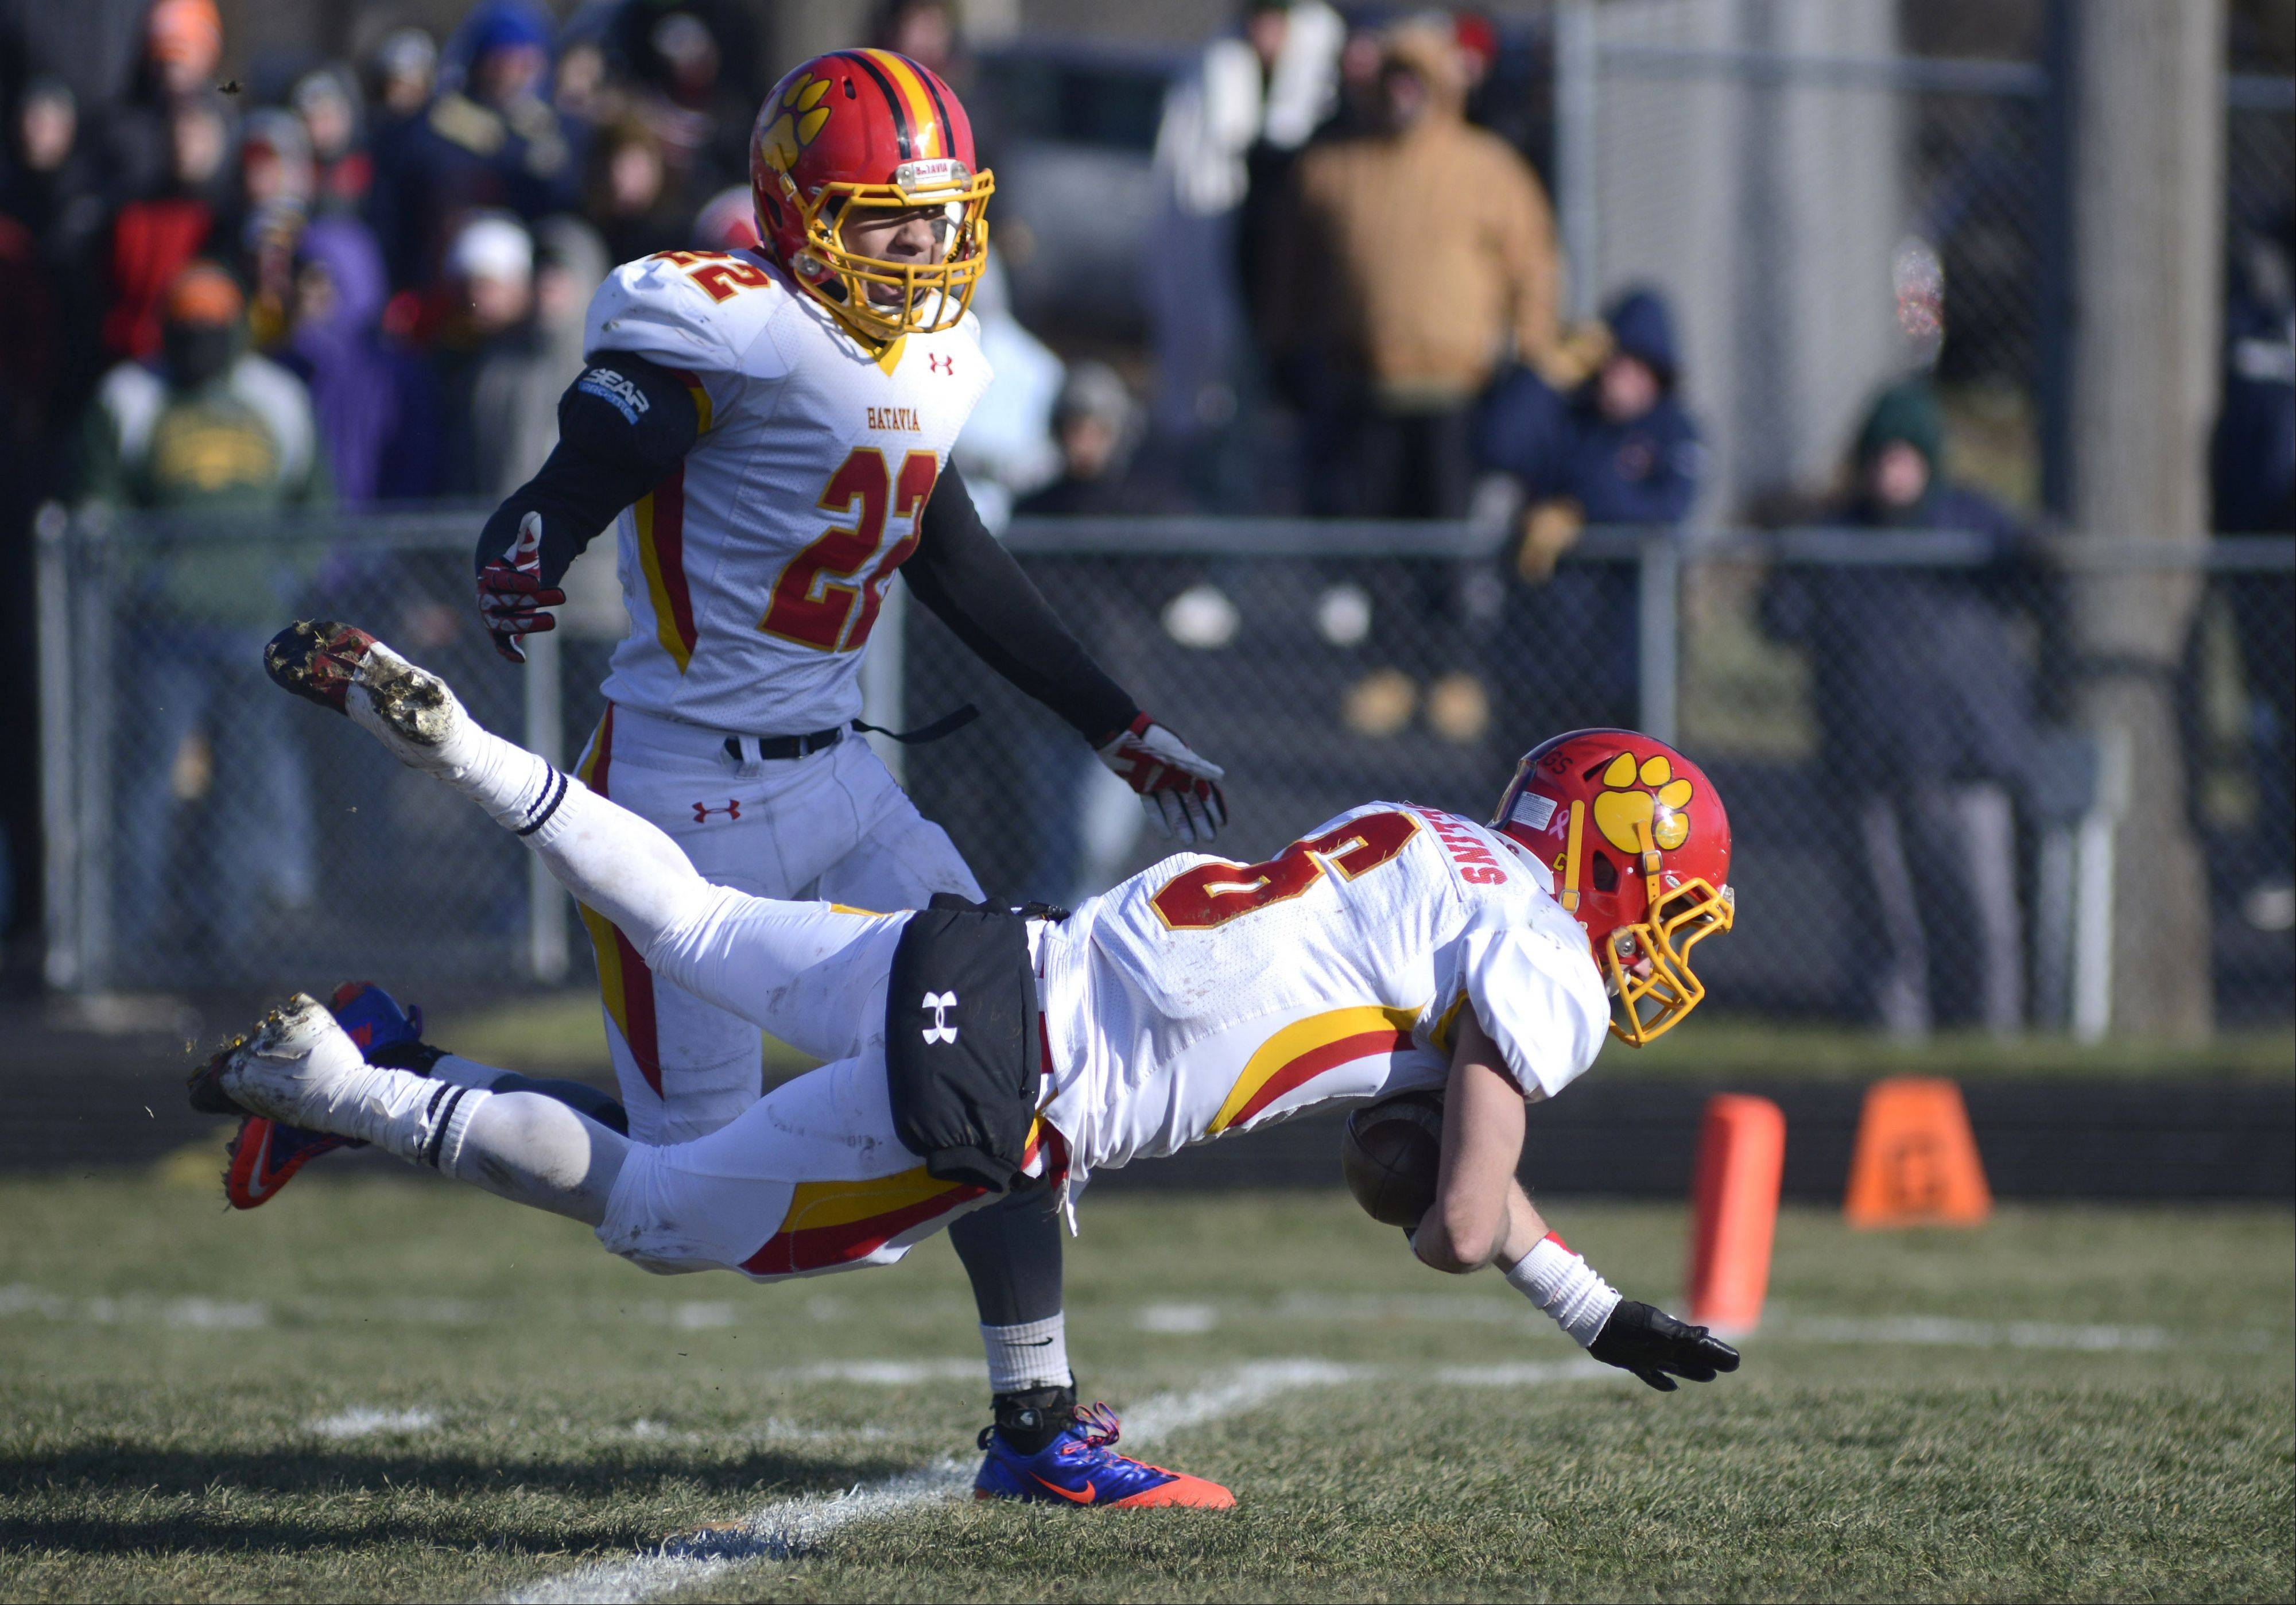 Batavia's Rourke Mullins soars over the goal line past teammate Anthony Thielk after intercepting a Rockford Boylan pass and making a successful run for the end zone in the second quarter of the Class 6A semifinal game on Saturday, November 23.